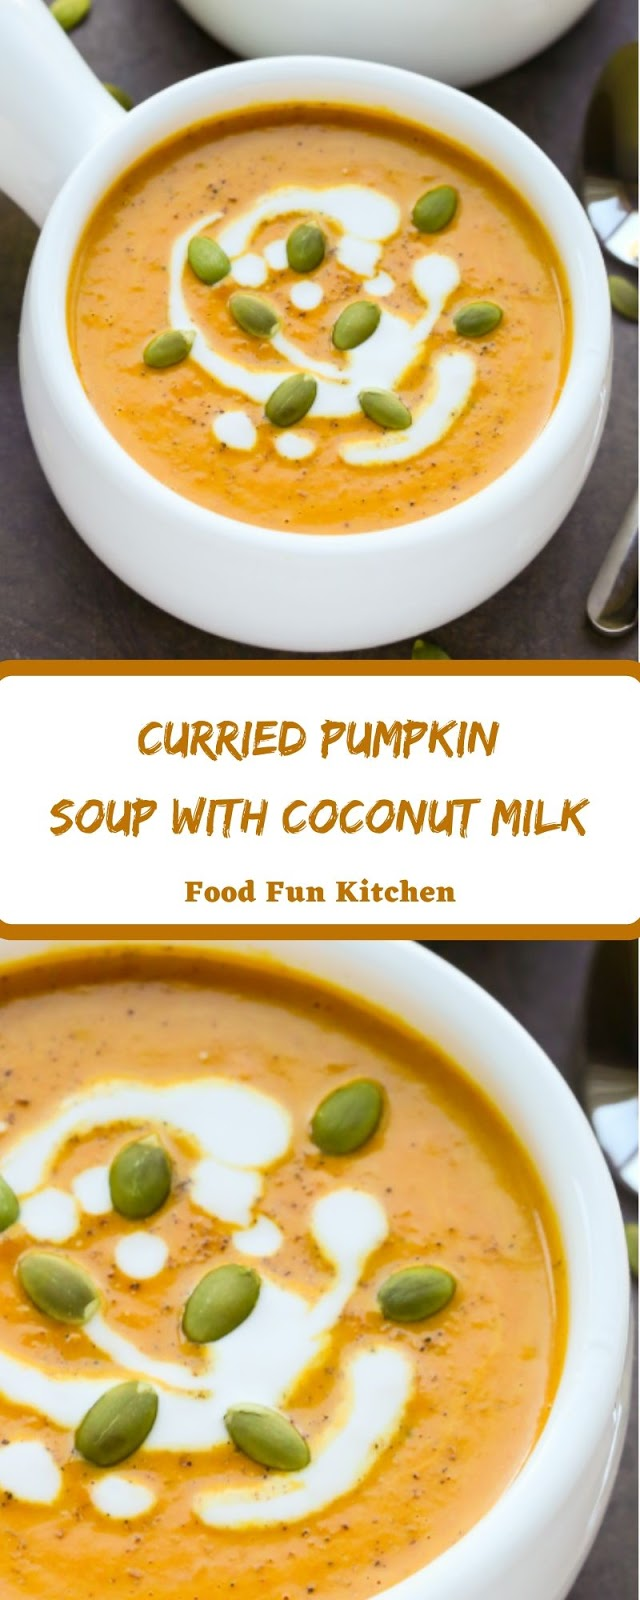 CURRIED PUMPKIN SOUP WITH COCONUT MILK